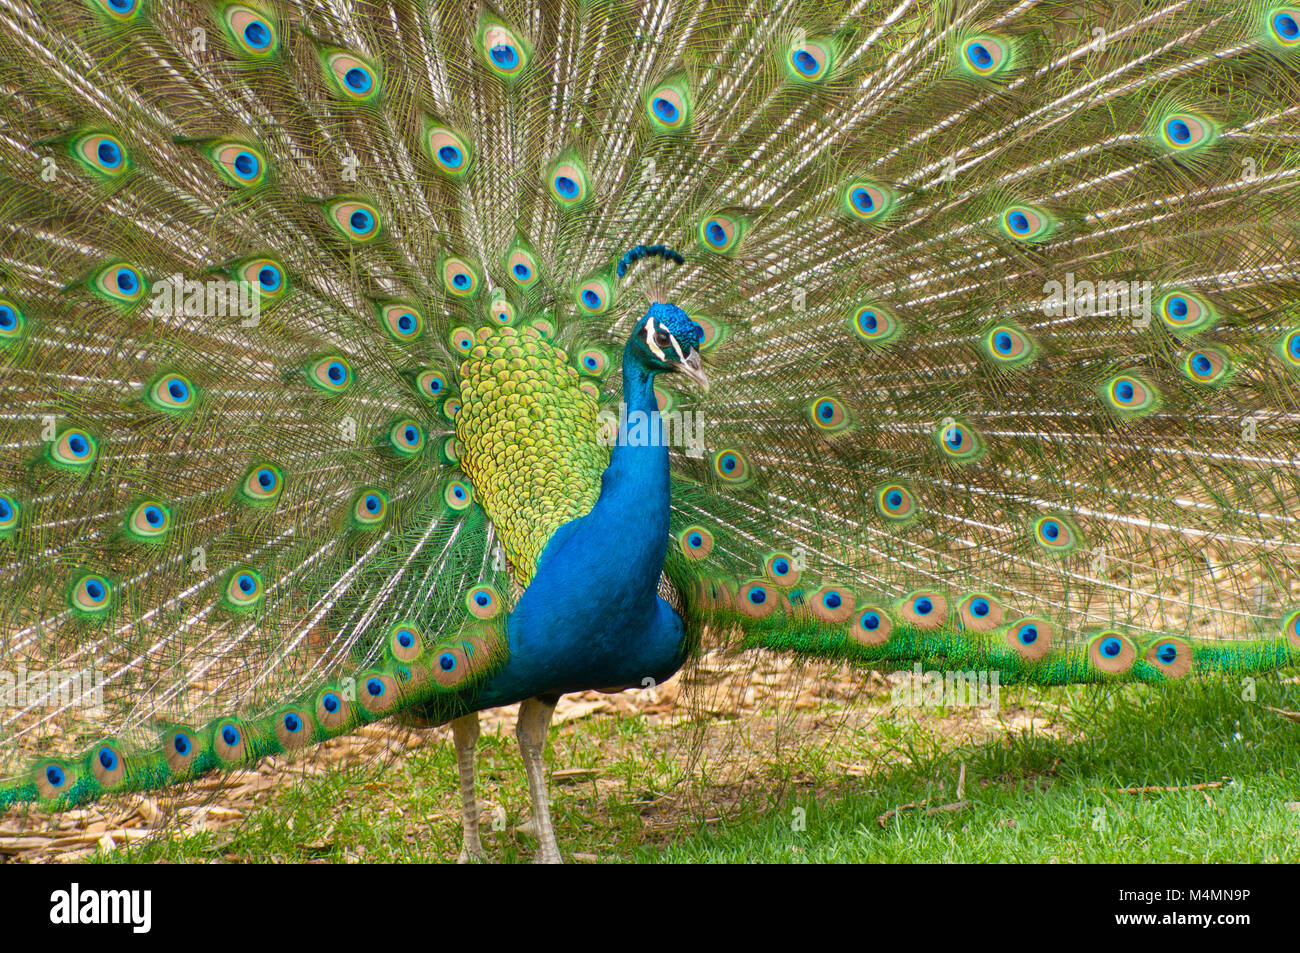 Frontal view of peacock bird standing with tail feathers opened - Stock Image